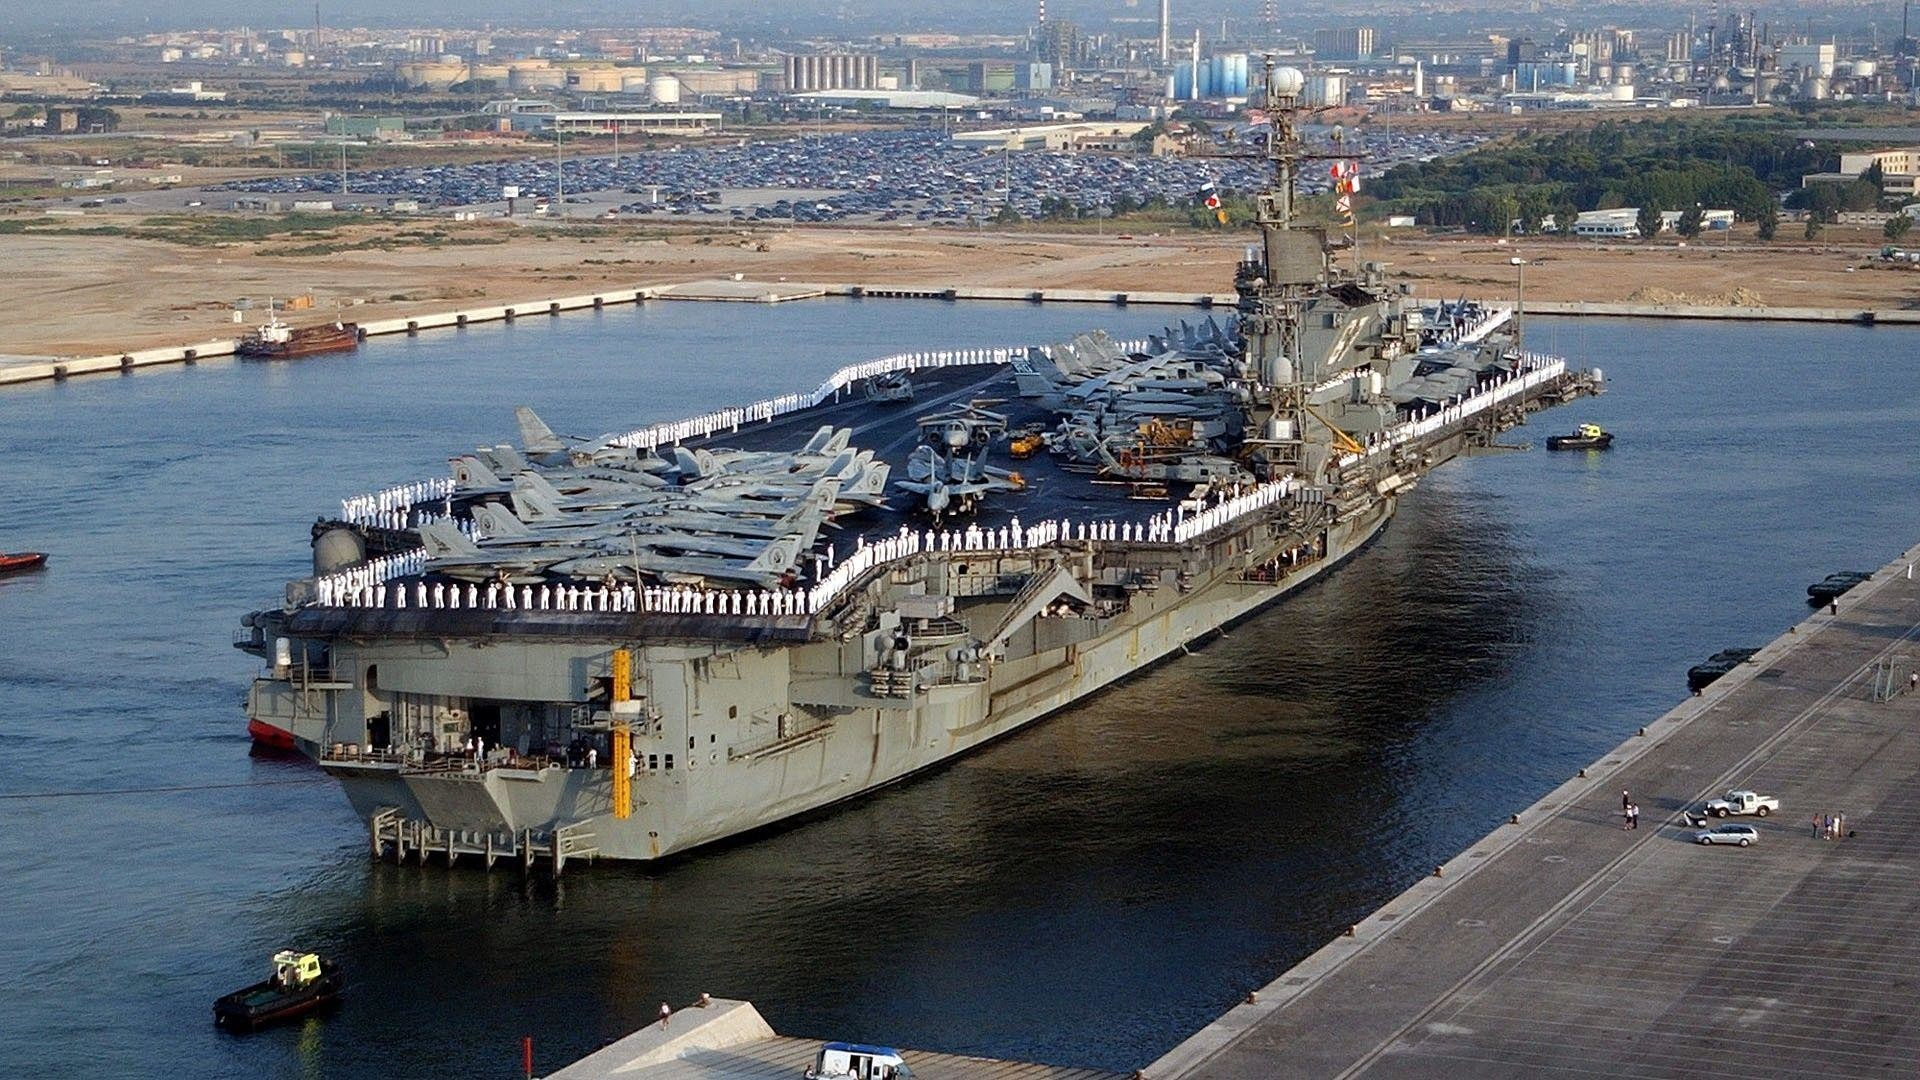 Wallpaper of Aircraft carrier in high resolutions – US ships and more